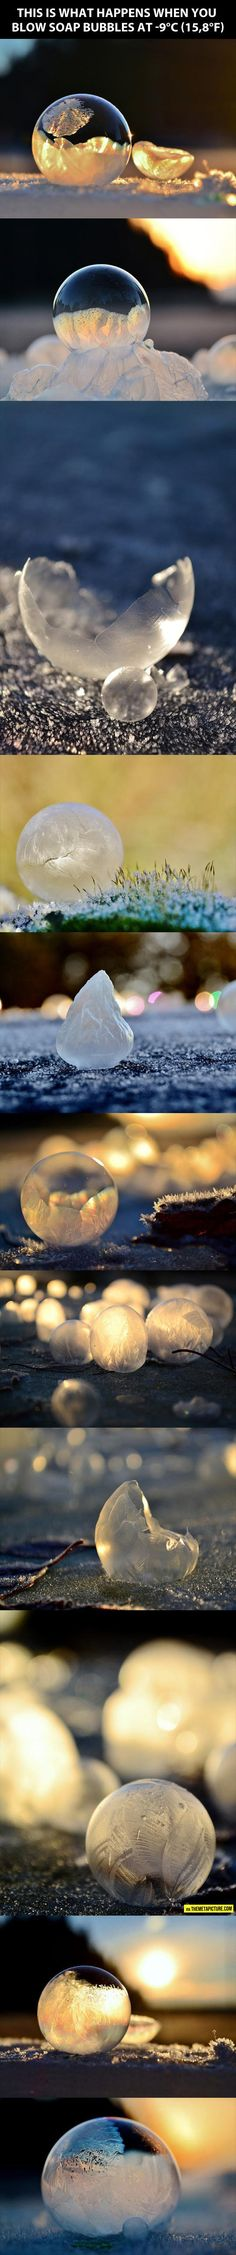 For just a moment, forget that this is a very cold soap bubble. It's cool and all, but bear with me. Instead, think of it as a model of earth & the soap is the thin layer of atmosphere with us living within the soap. Not the best analogy, but the air we rely on is about this thin when compared to the bulk of the earth. Our little bubble of air has sustained all of life that has ever been on this planet. However, in the last 100 years, mankind alone has done damage that might not ever be…